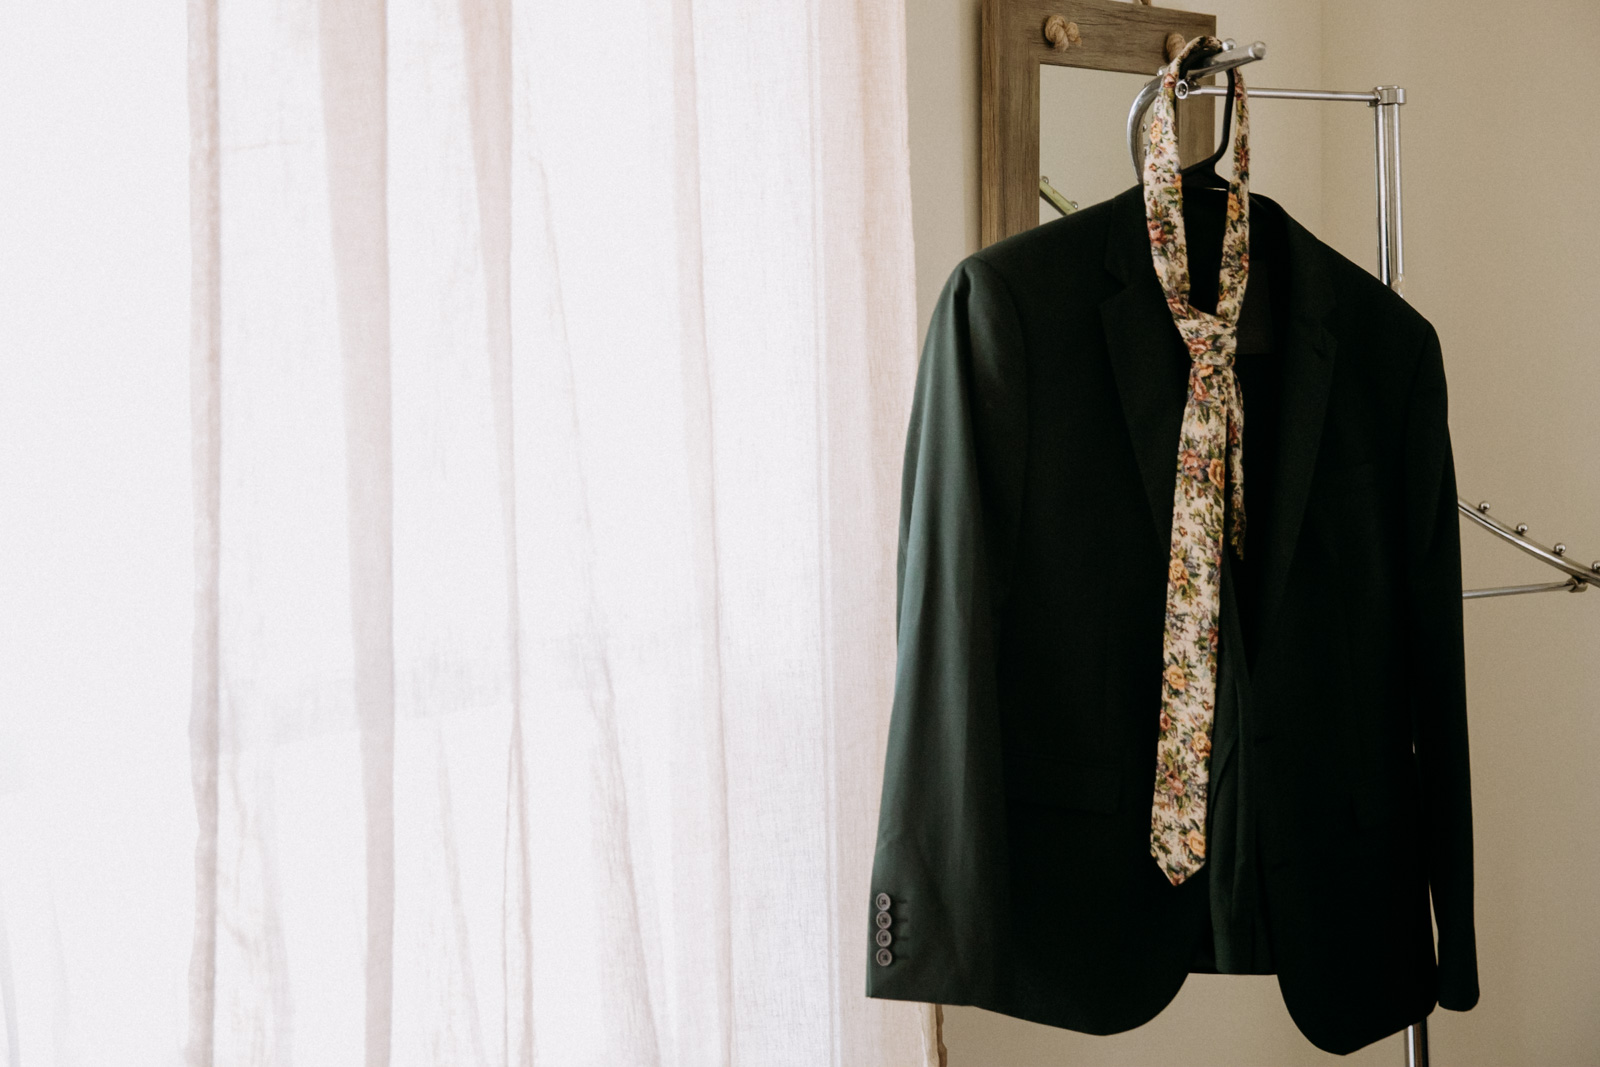 Groom's forest green suit and floral tie